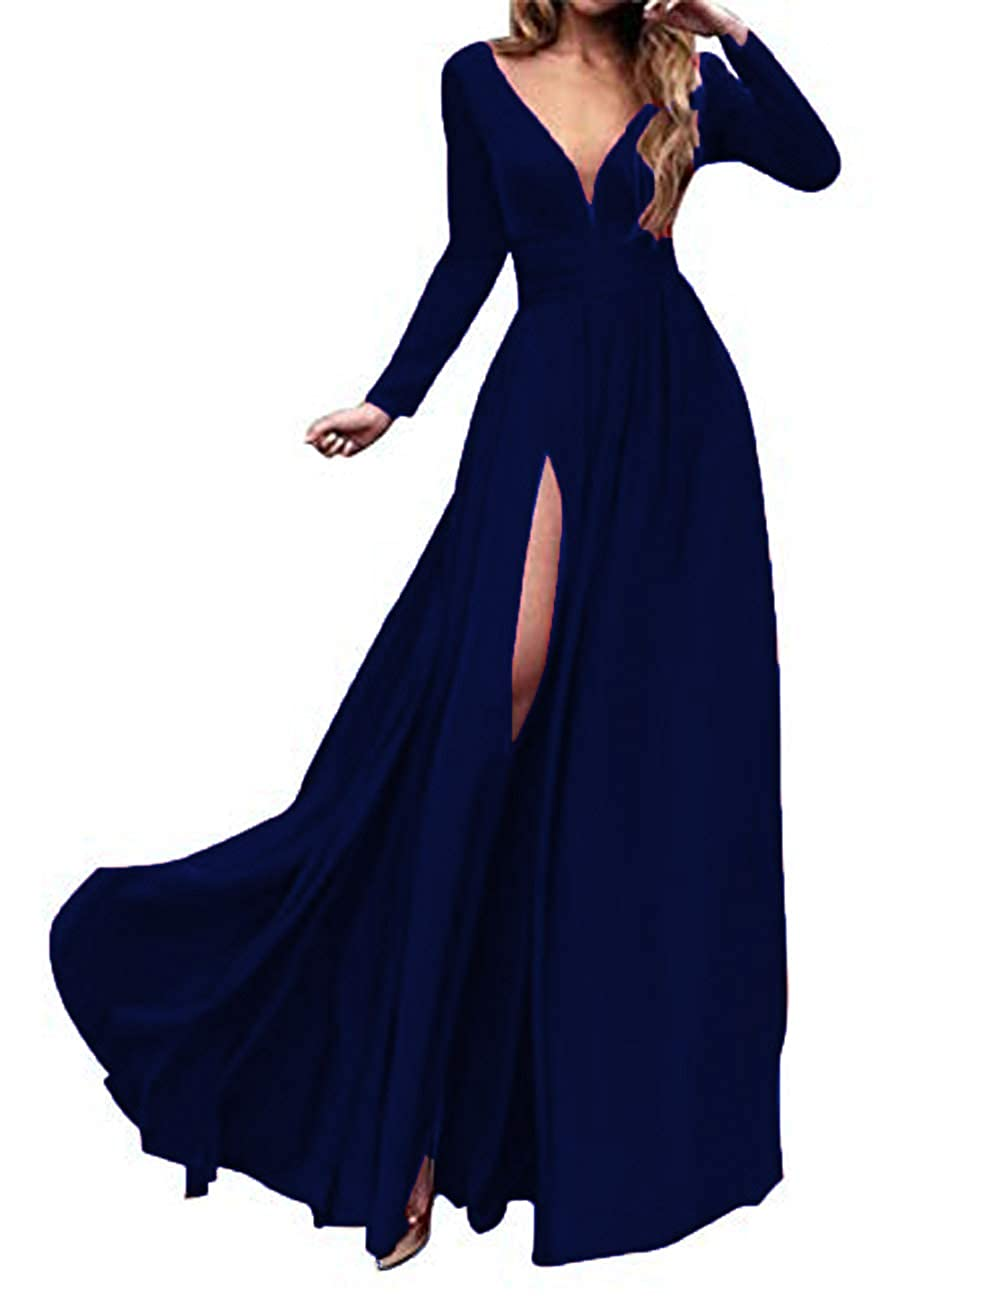 3style Navy bluee MariRobe Women's High Split Evening Dress Deep V Neck Prom Gown Long Sleeve Party Gown